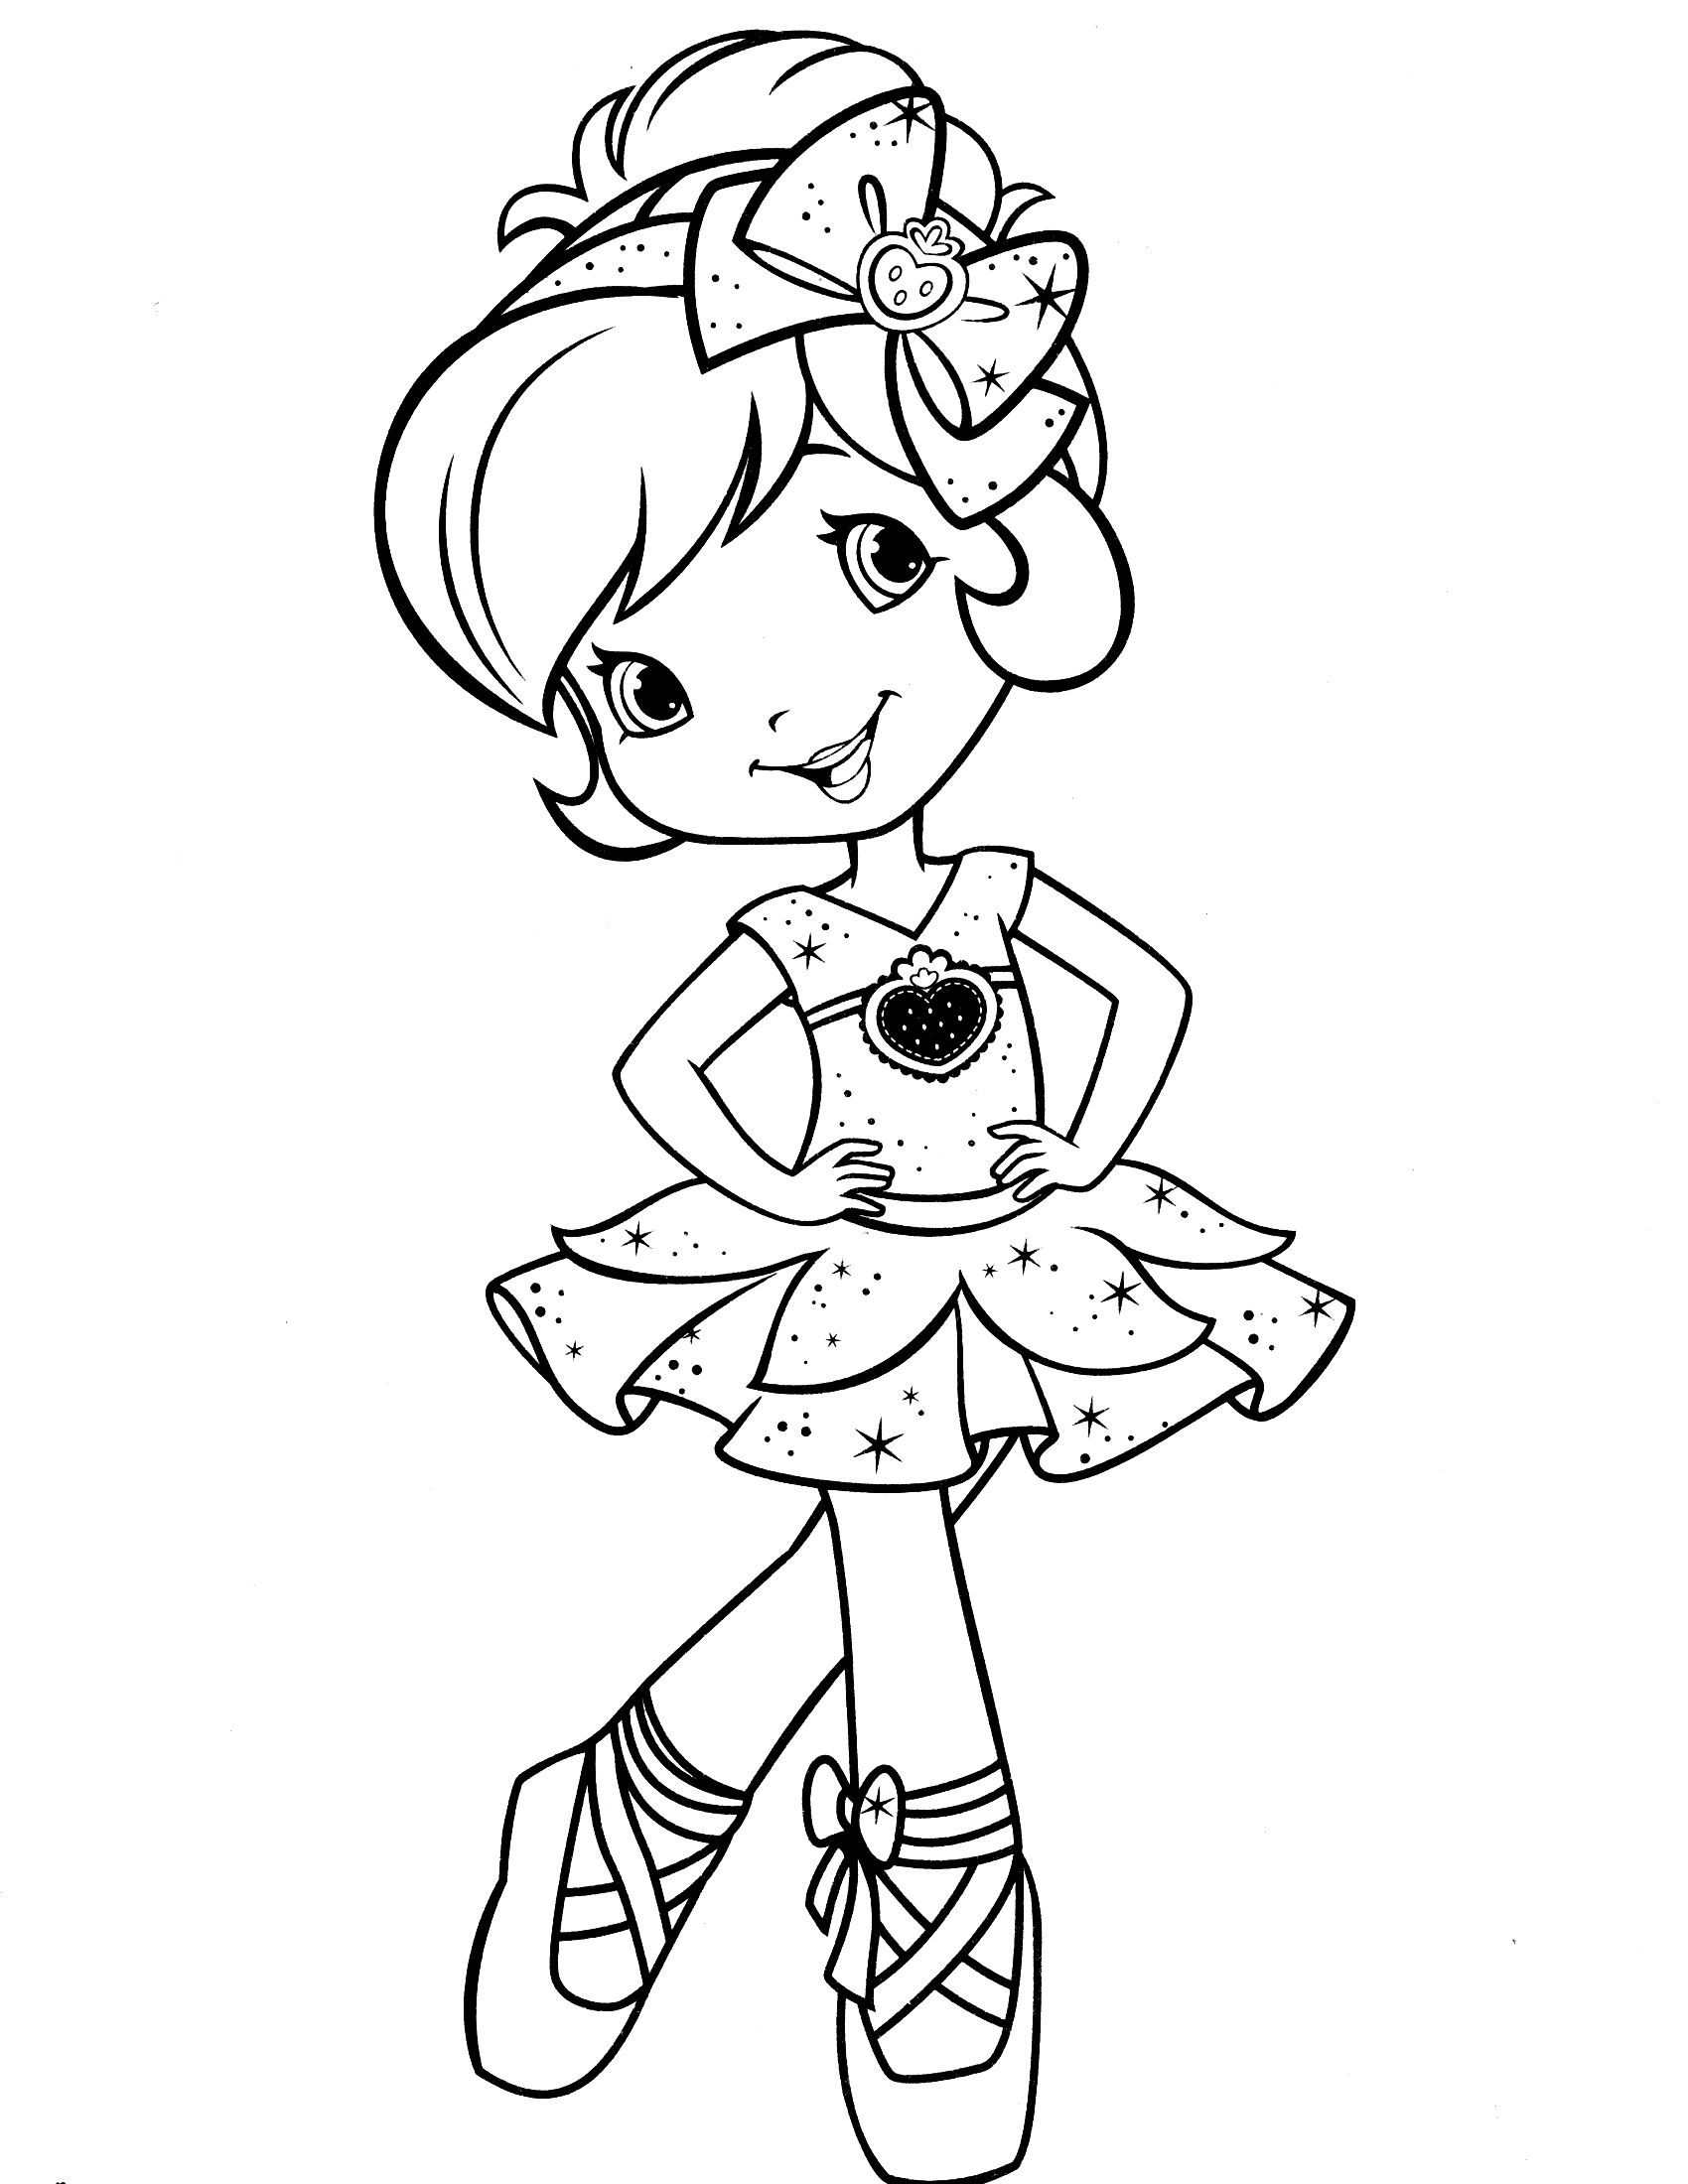 Strawberry Shortcake Coloring Page Fondant Template